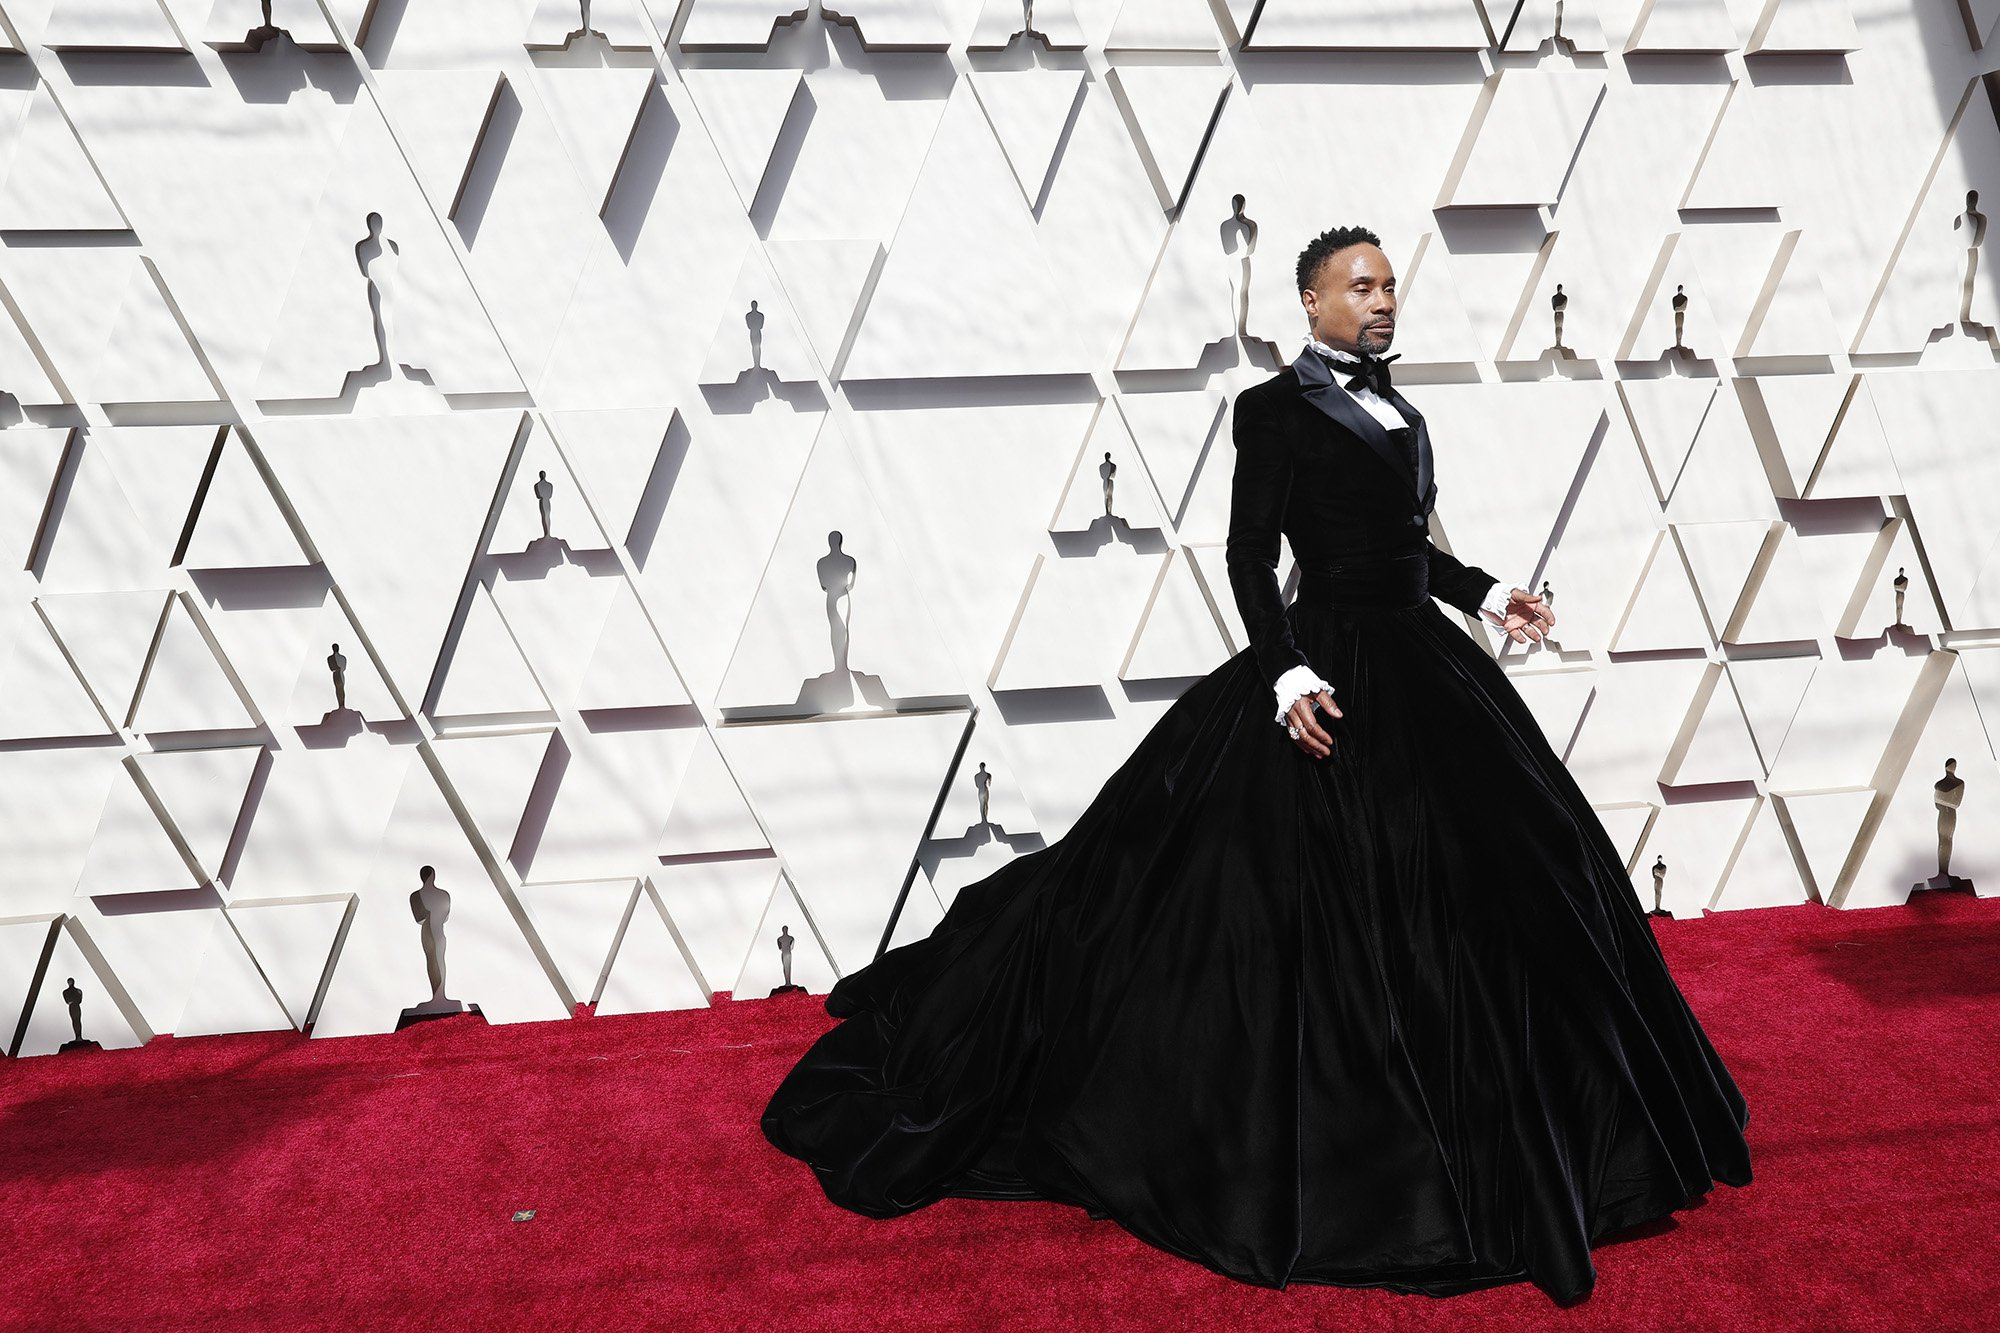 ENTER-MOVIE-OSCARS-REDCARPET-PORTER-LA.jpg